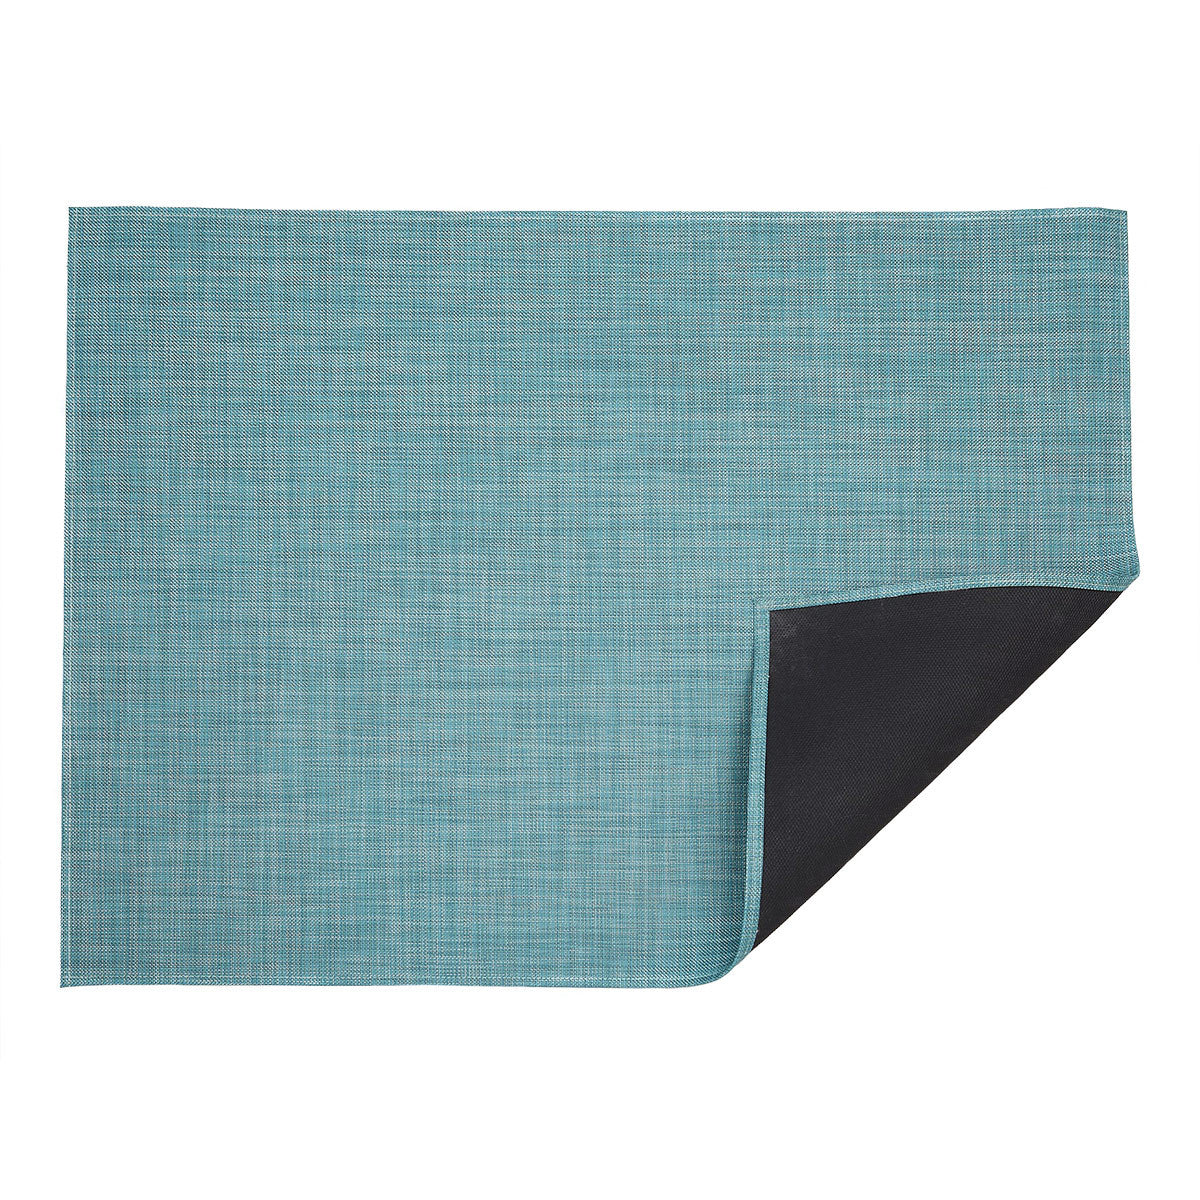 Mini Basketweave Floor Mat in Turquoise